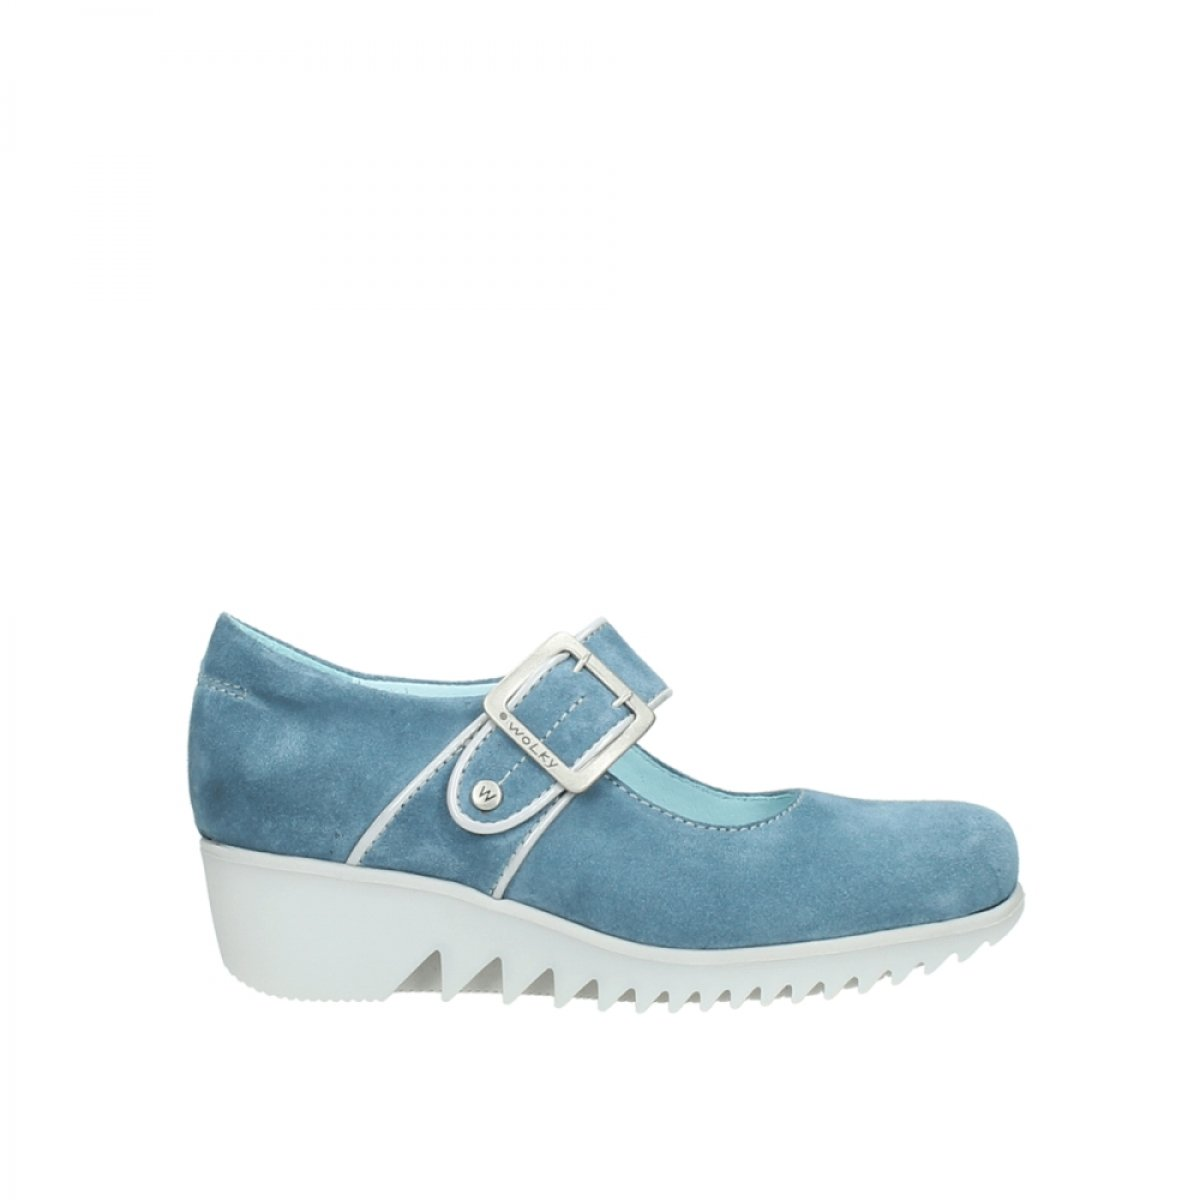 Wolky Comfort Mary Janes Silky B01E10FYDW 42 M EU|40820 Denim Suede